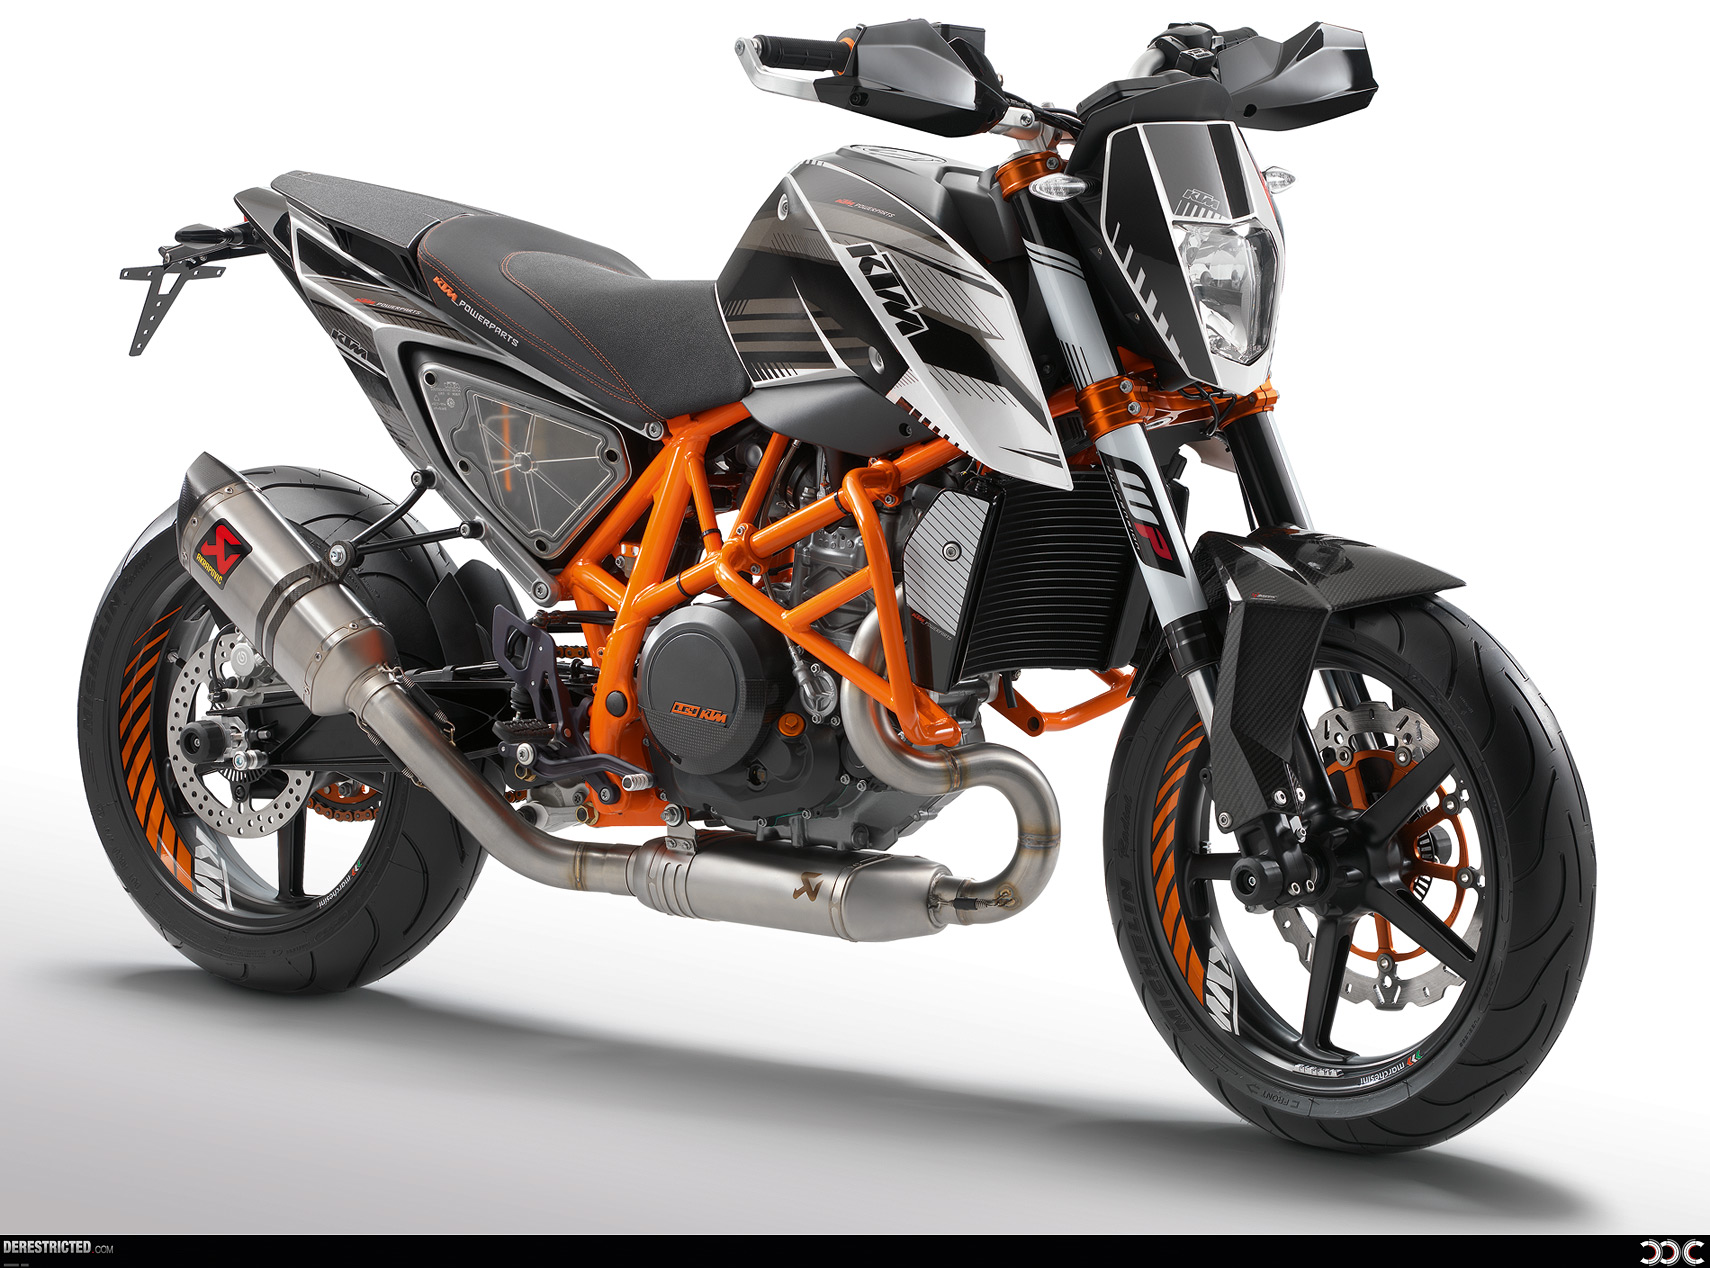 KTM Duke 690 2012 with lots of powerparts wallpaper DERESTRICTED 1710x1268